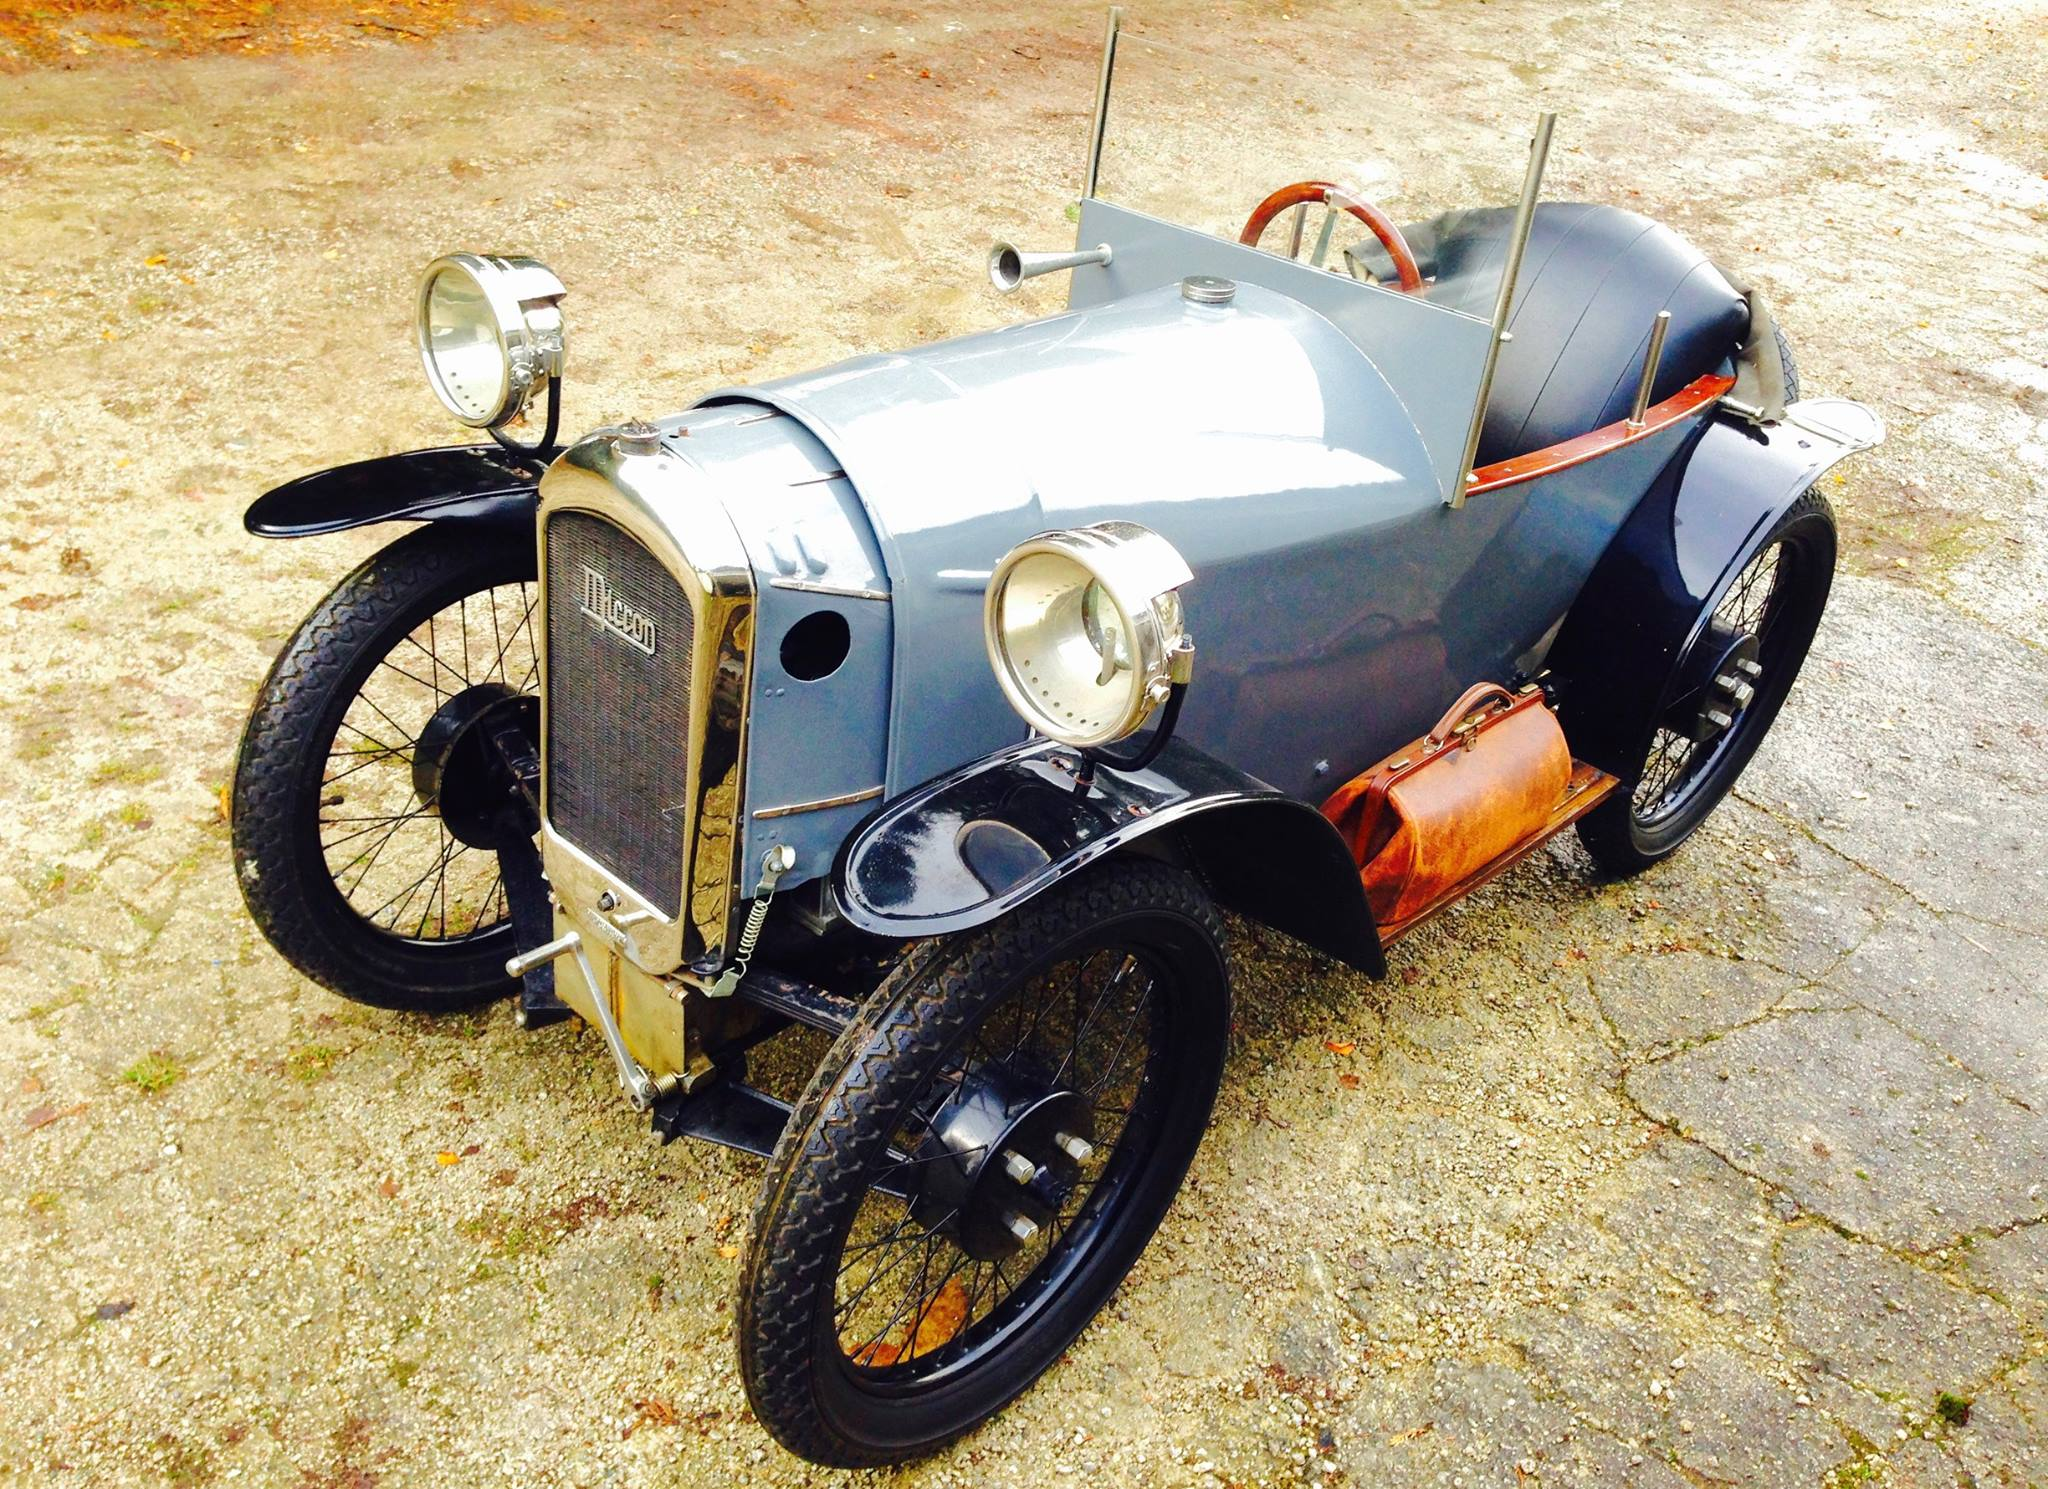 MICRON Cyclecar 350cc 1925 ( Be ) Hendrix Marc